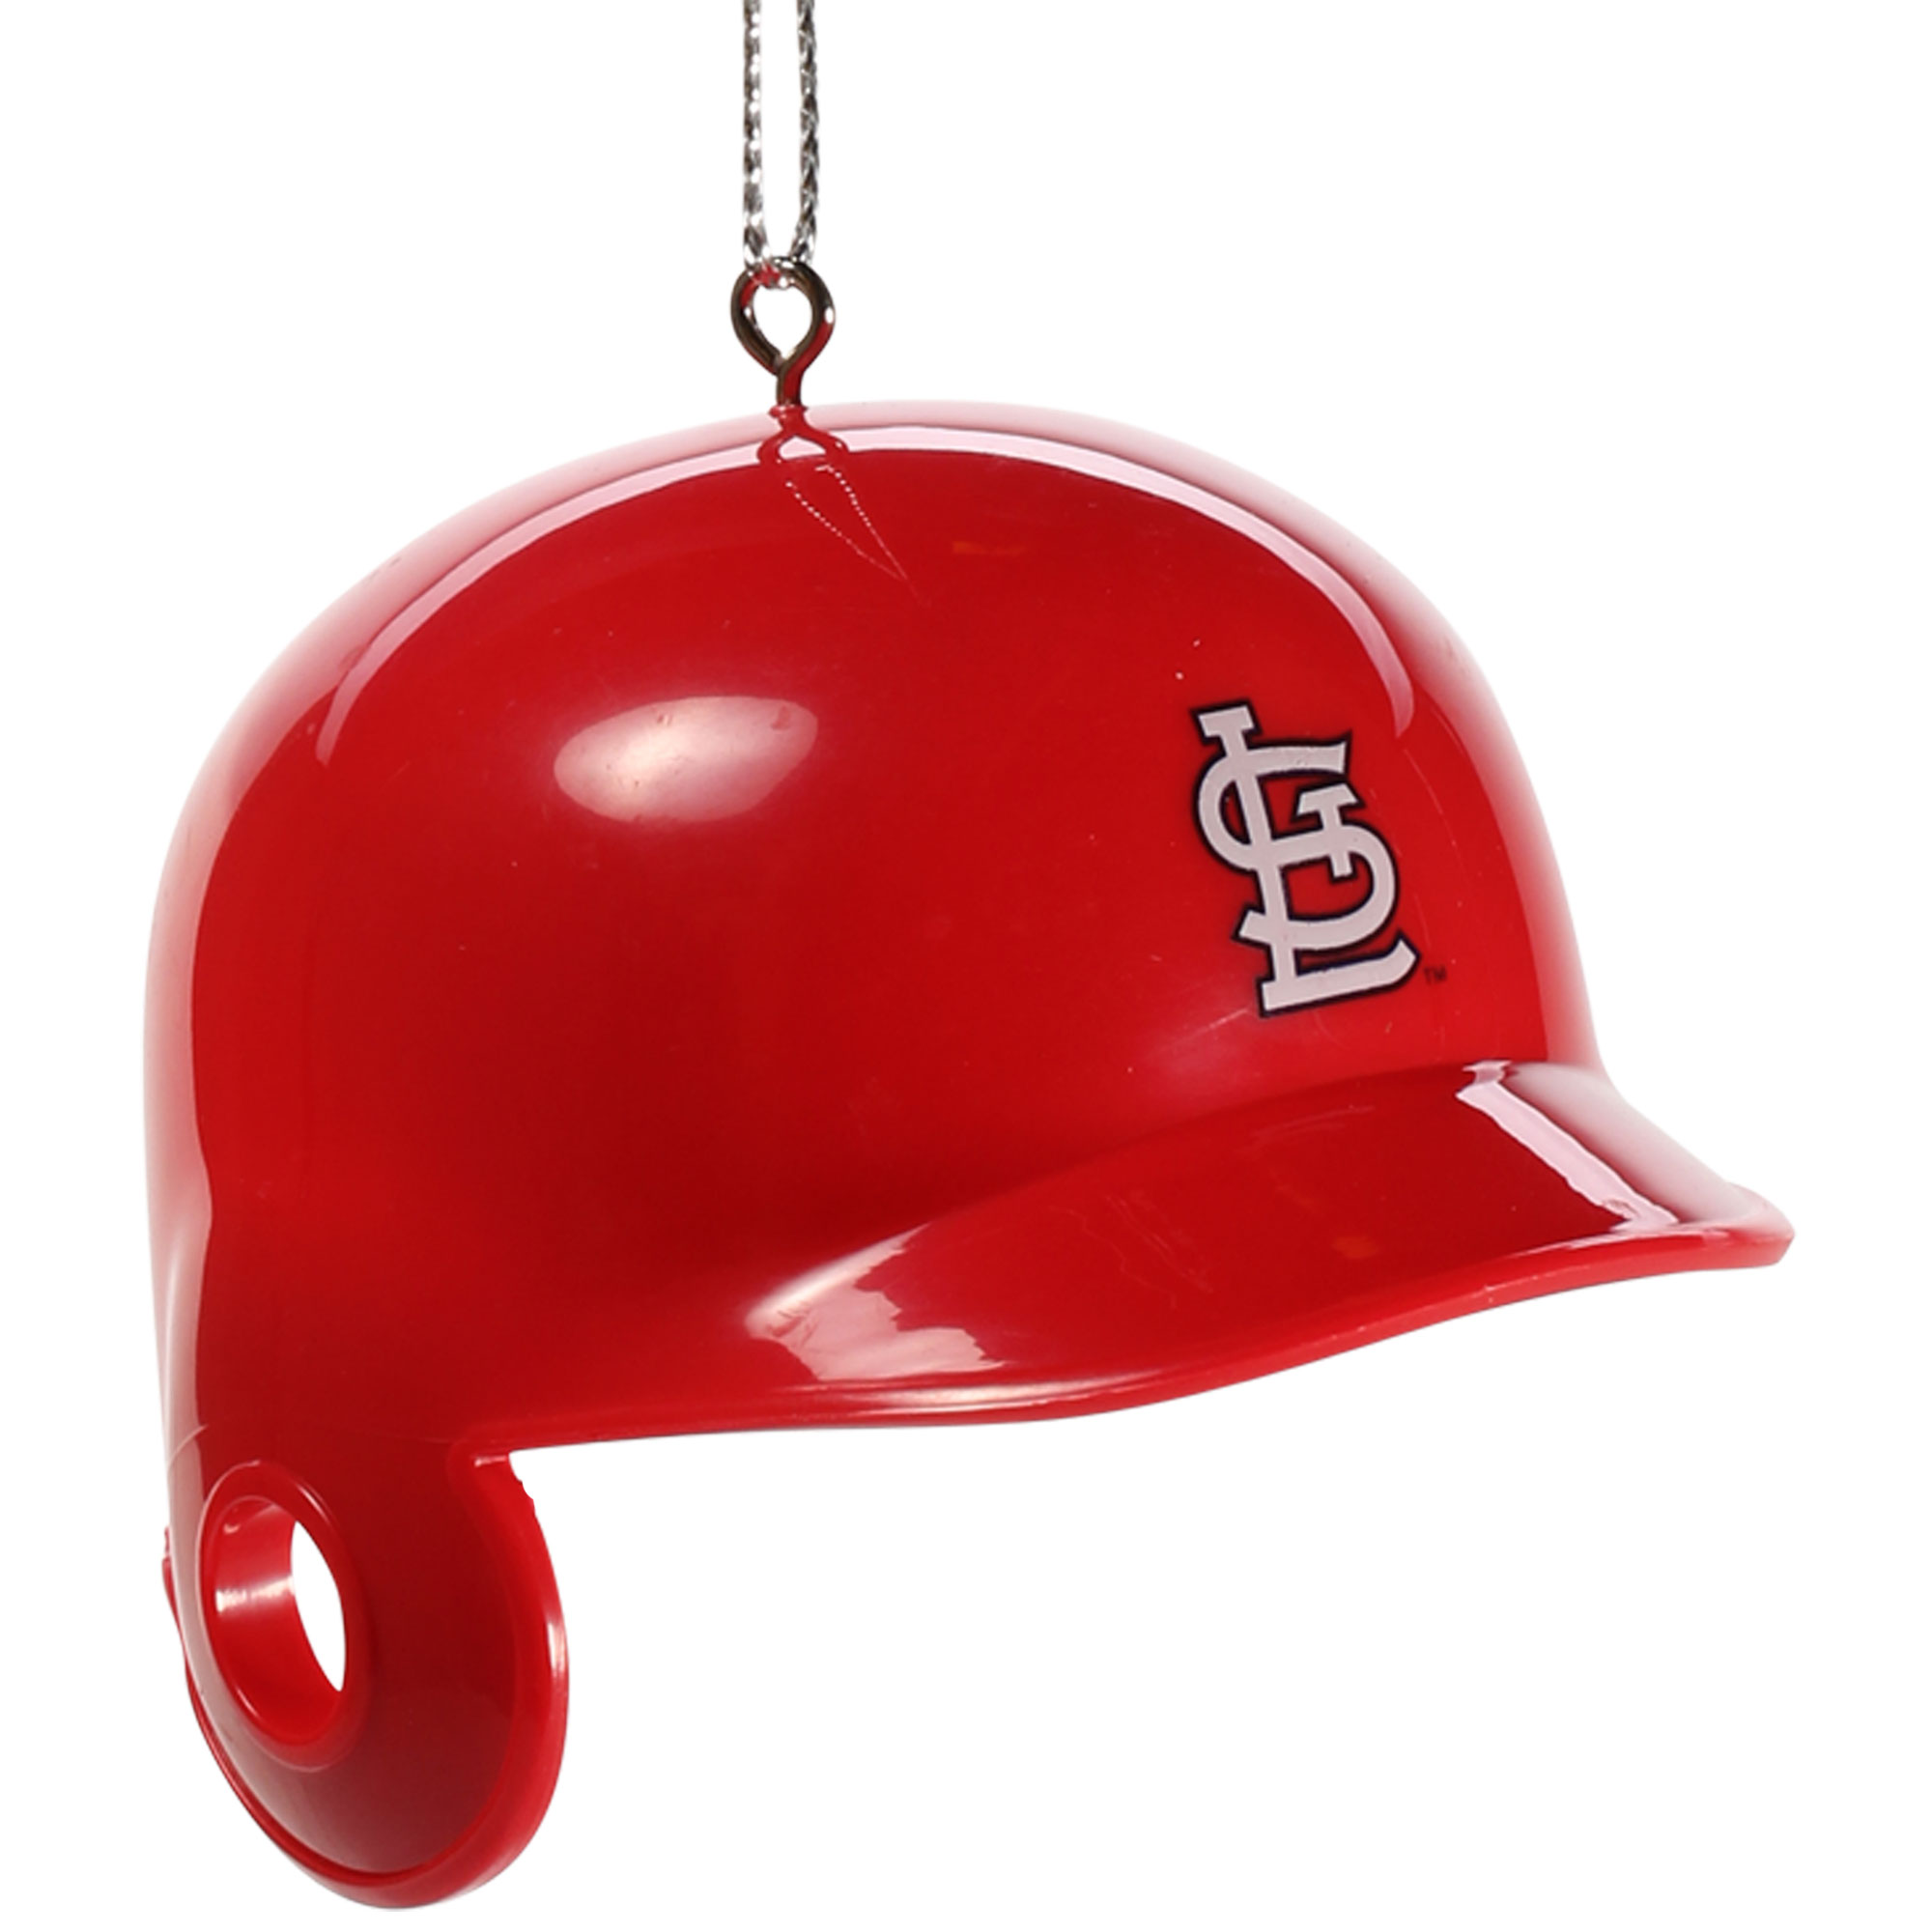 "St. Louis Cardinals 2.5"" Helmet Ornament - No Size"